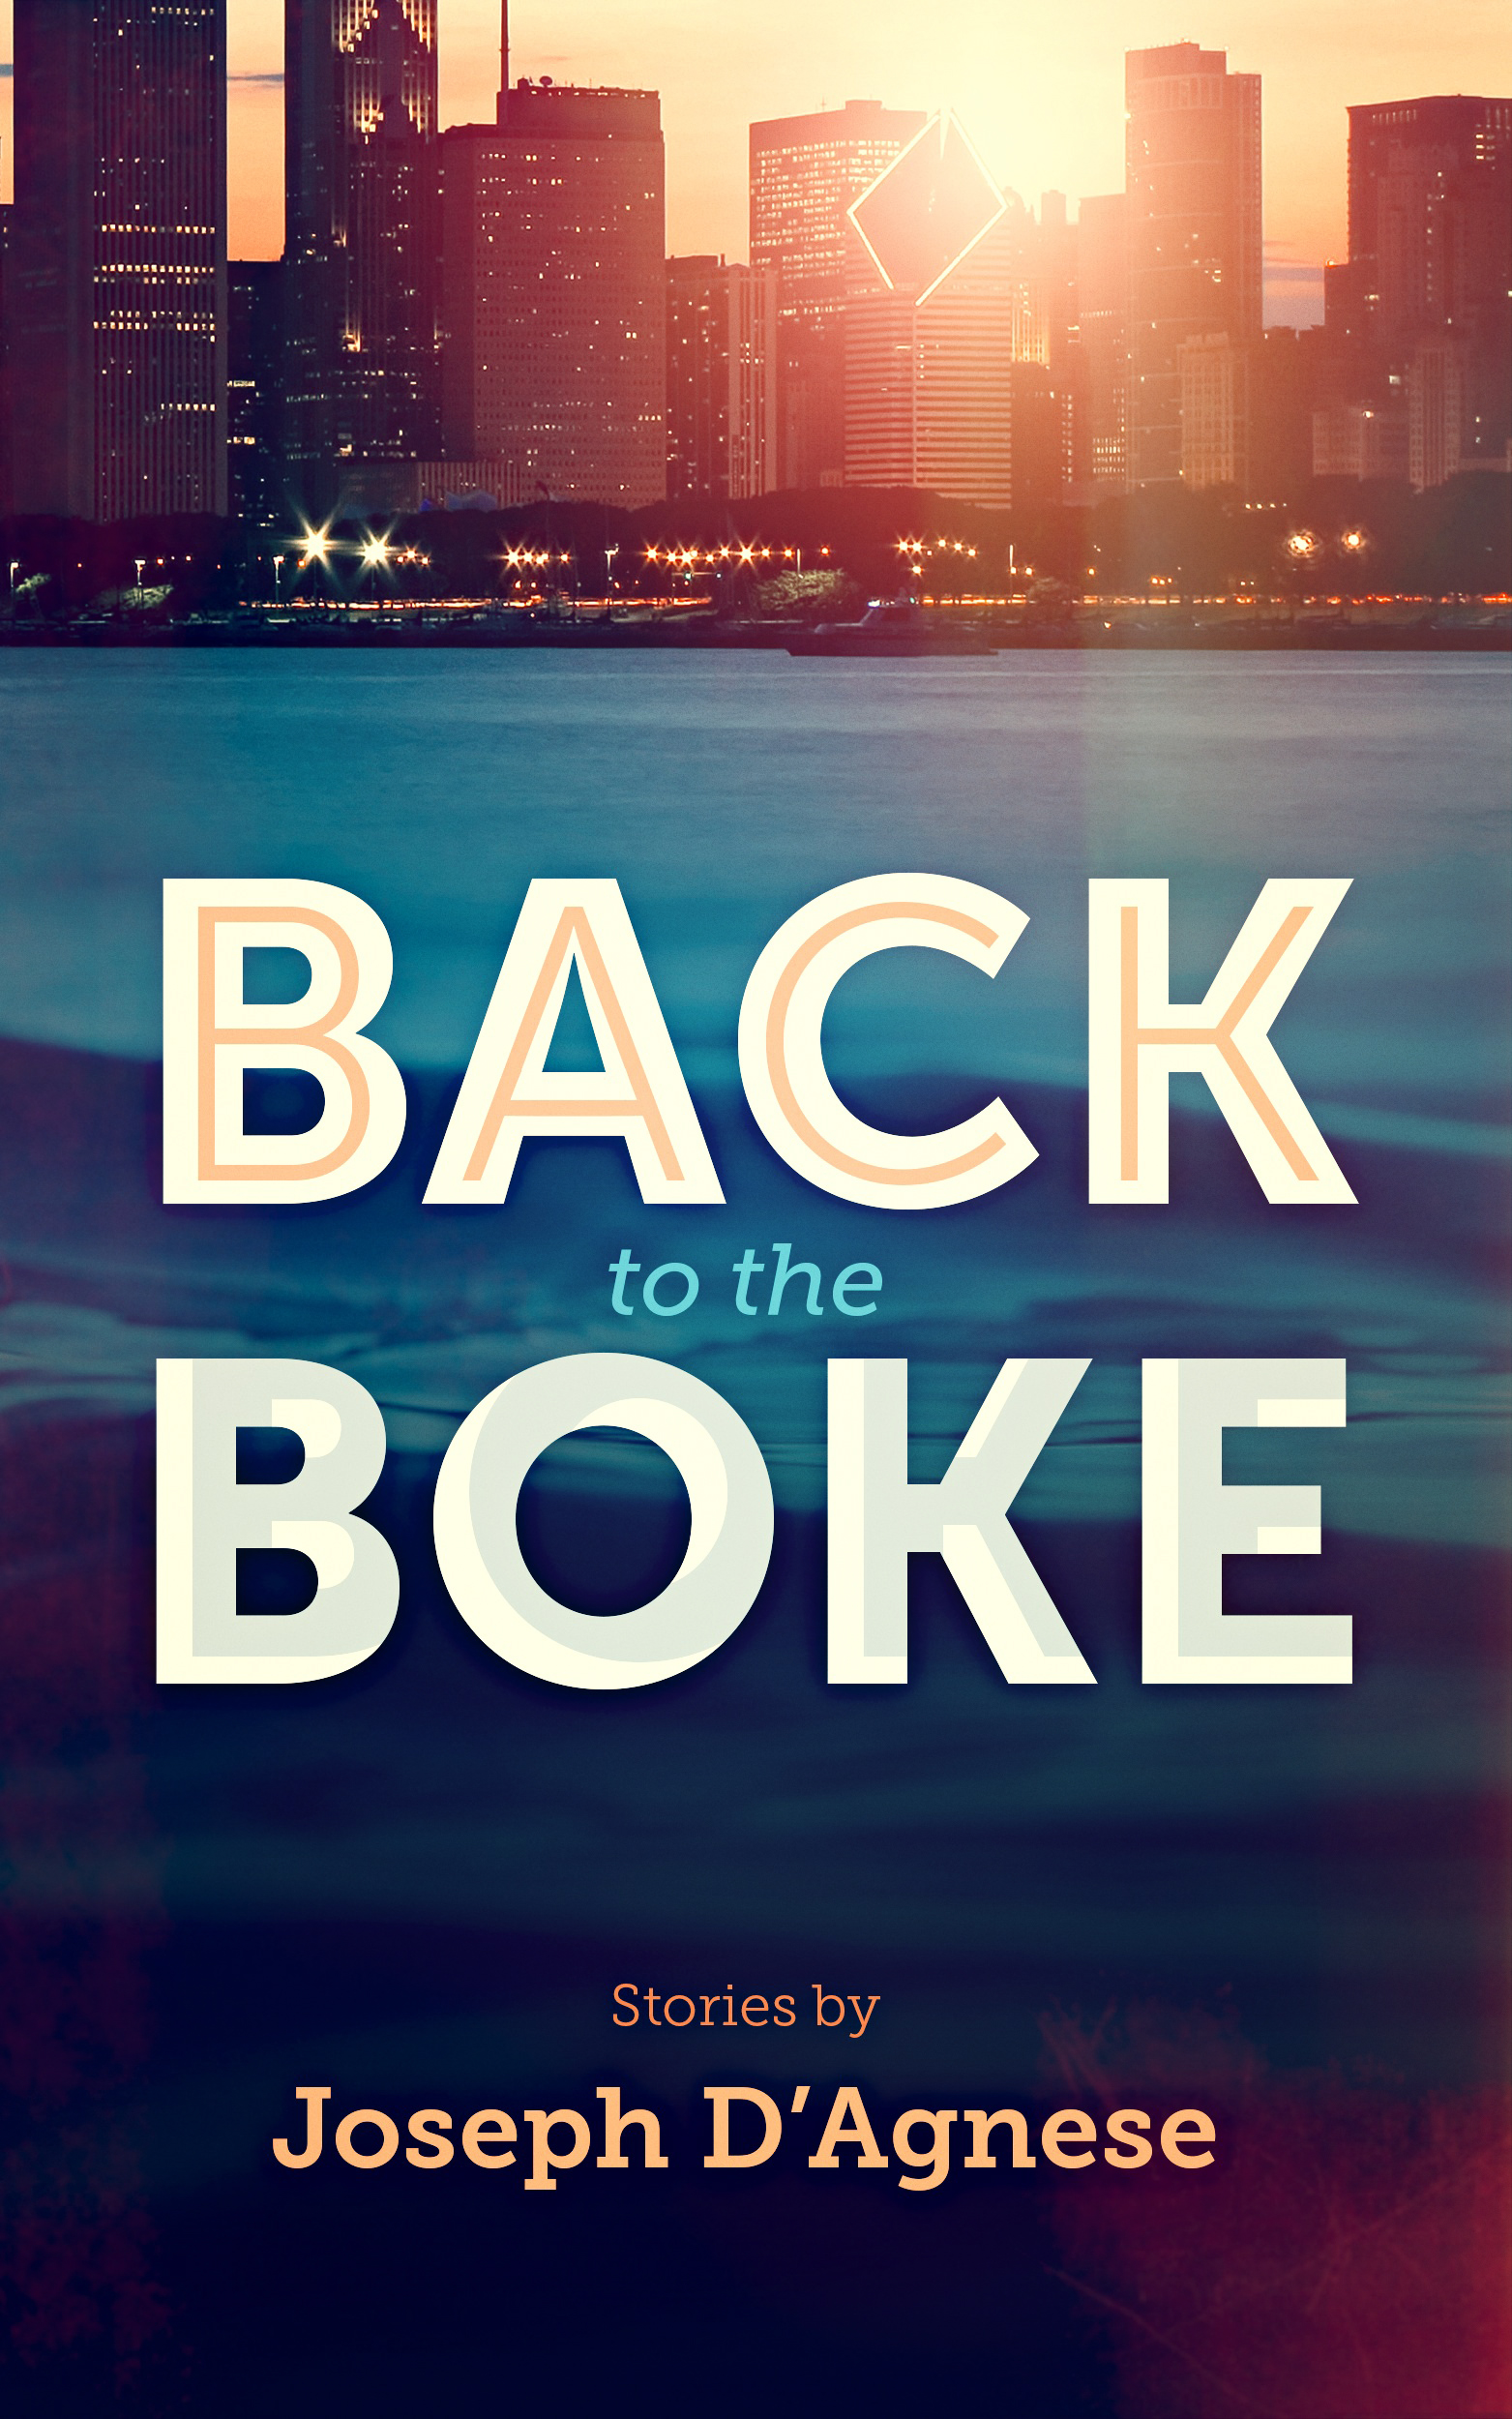 Back to the Boke by Joseph D'Agnese